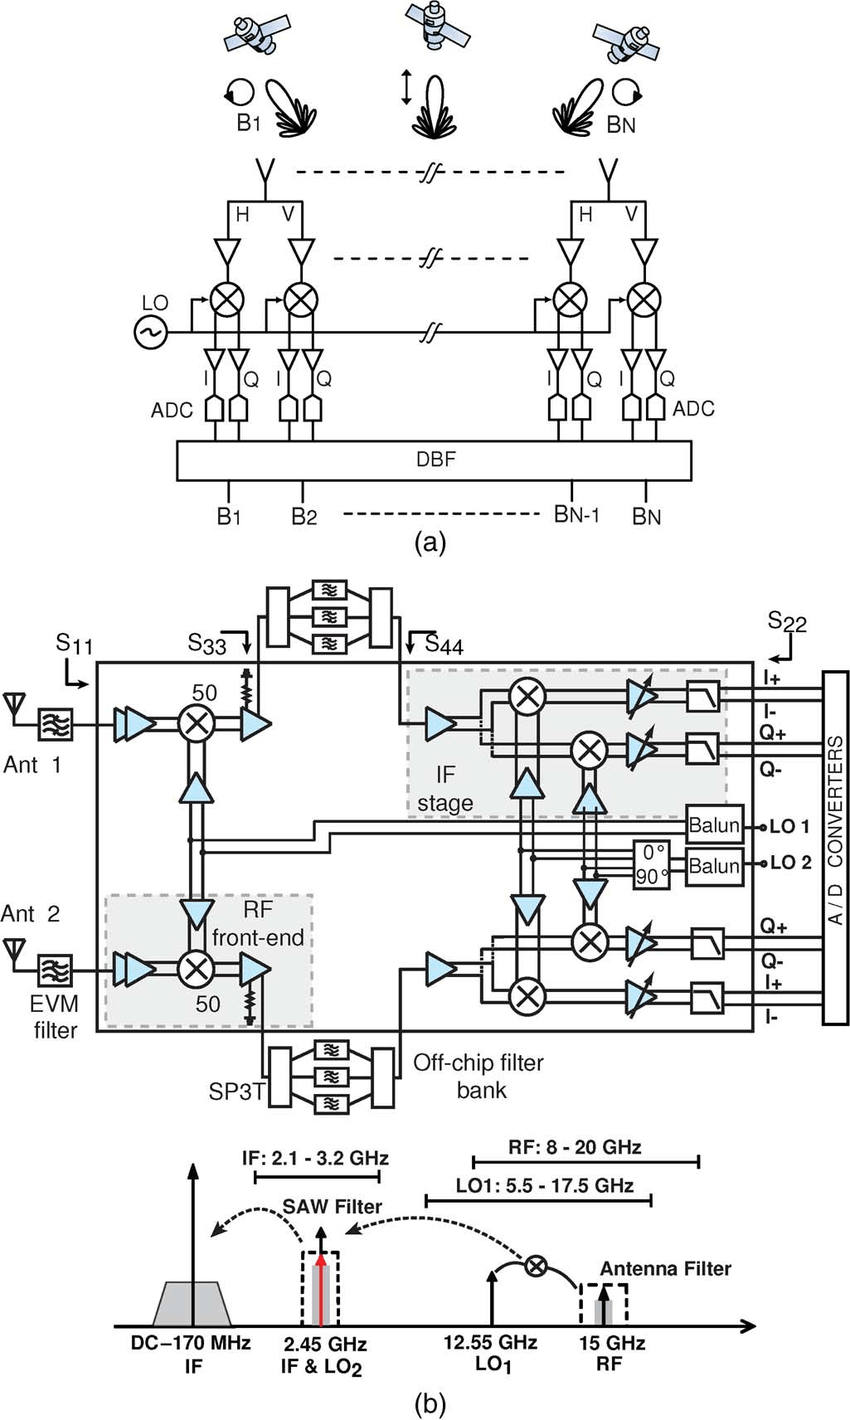 (a) Digital beam-forming system. (b) Block diagram of the